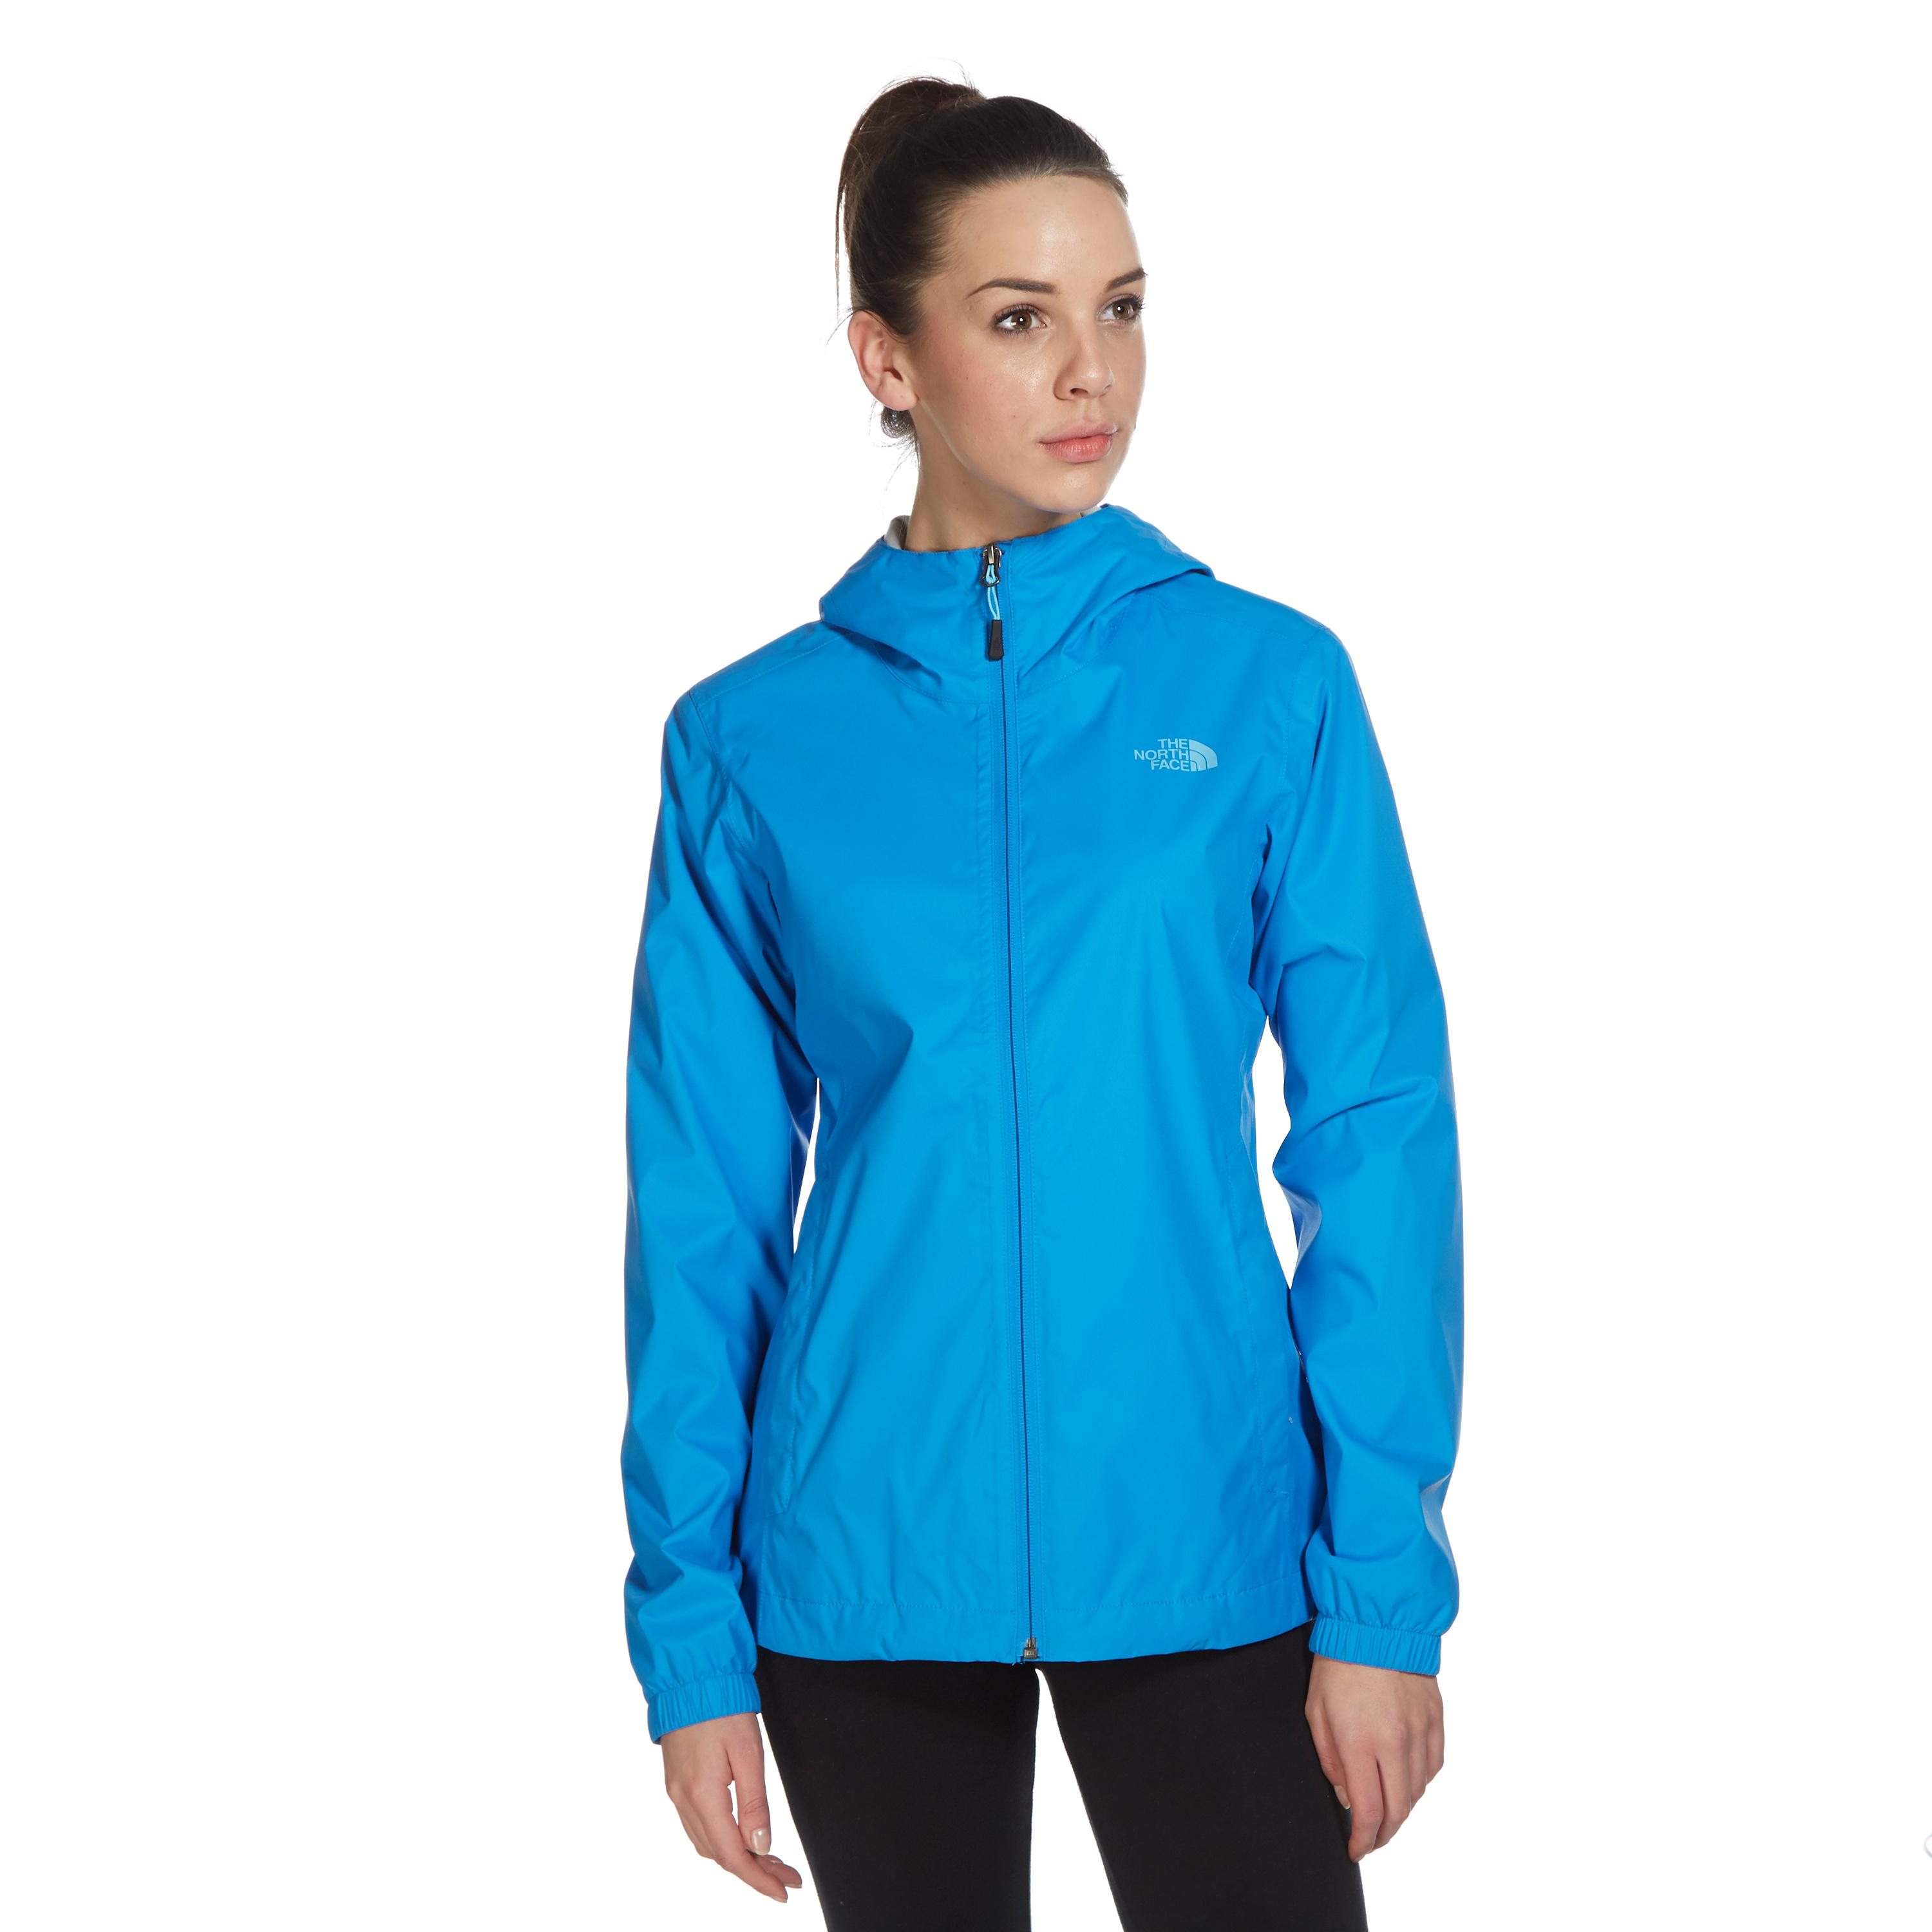 the north face quest jacket women s jacket compare compare outdoor jacket prices. Black Bedroom Furniture Sets. Home Design Ideas